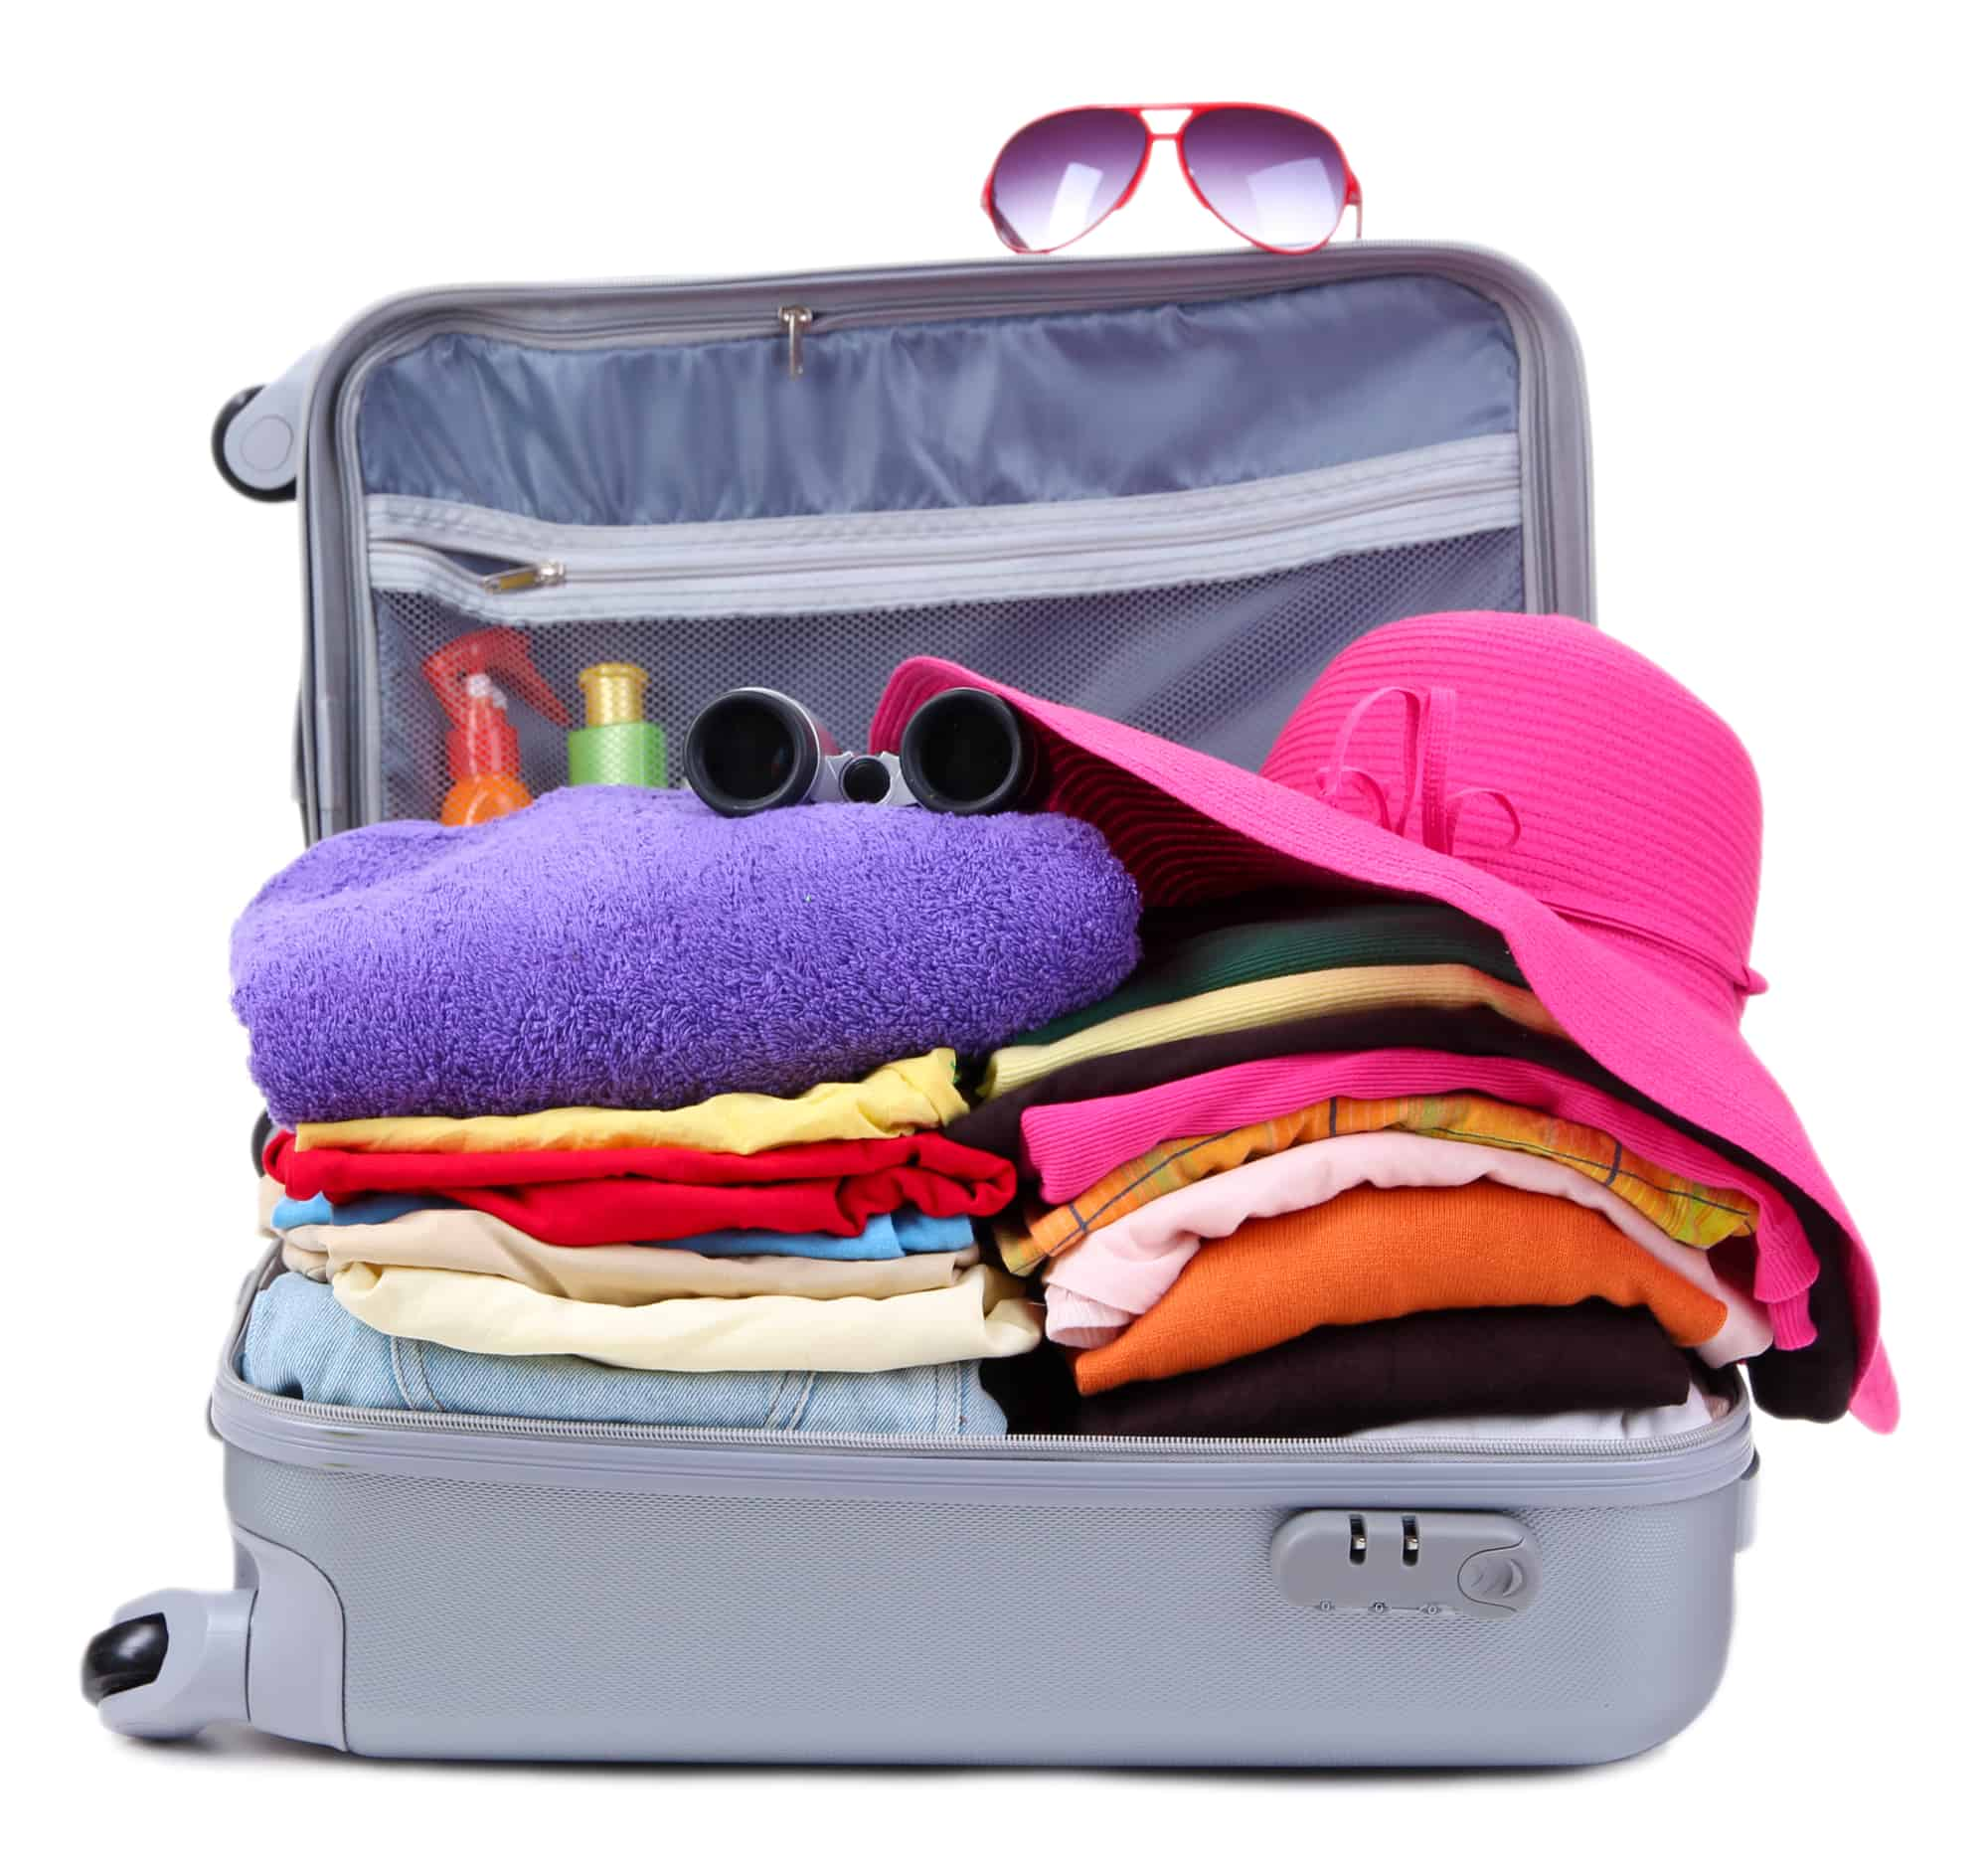 Open silver suitcase with clothing isolated on white as a summer organization tip